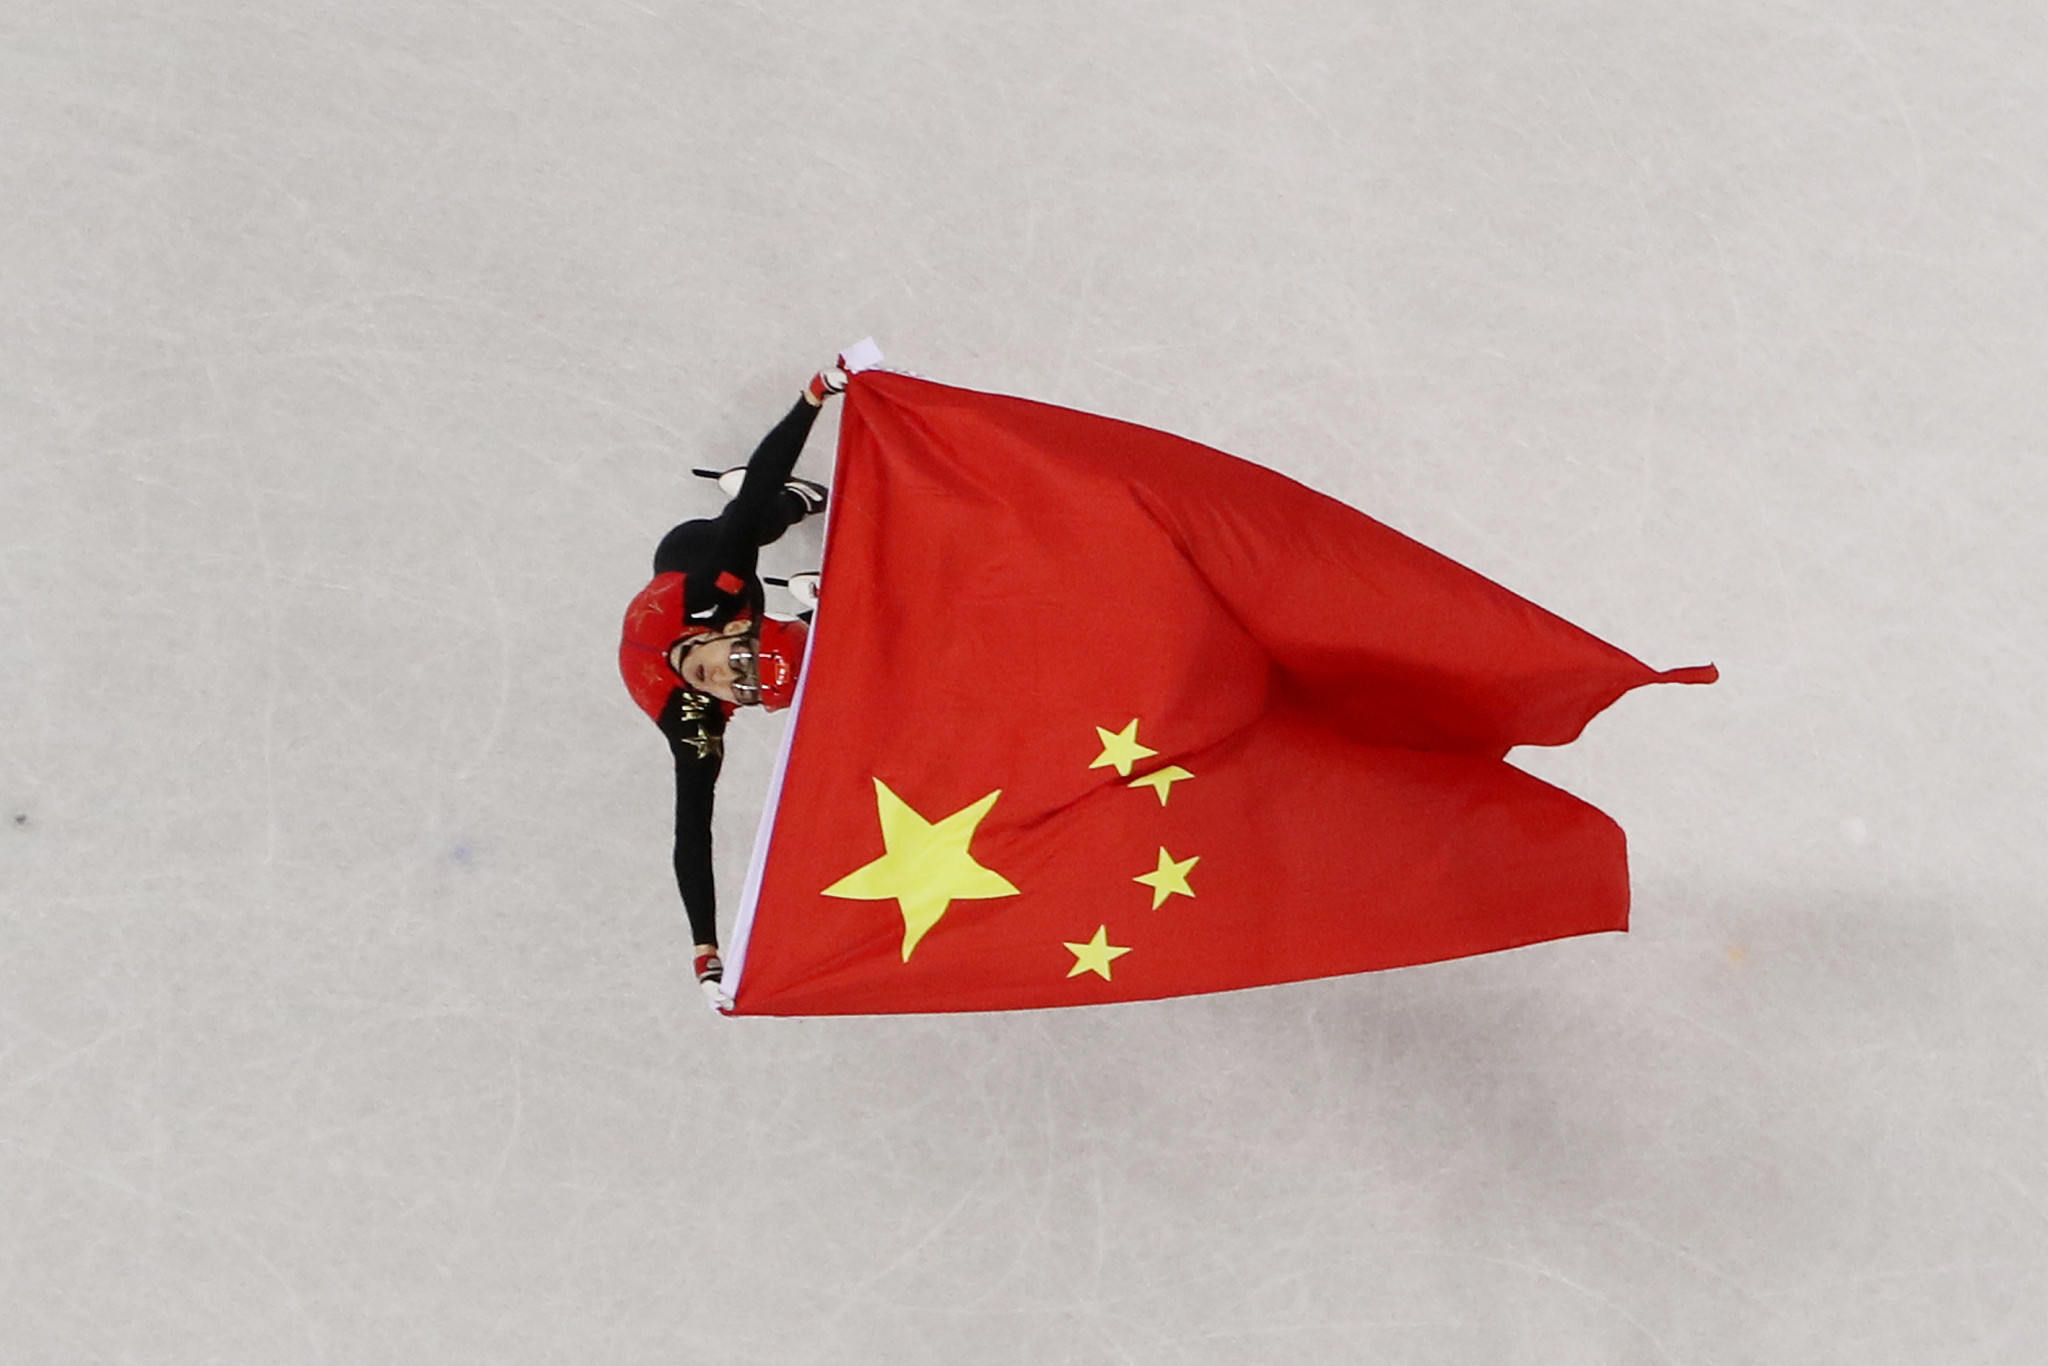 New forecast sees China finishing well down medals table at home Winter Olympics